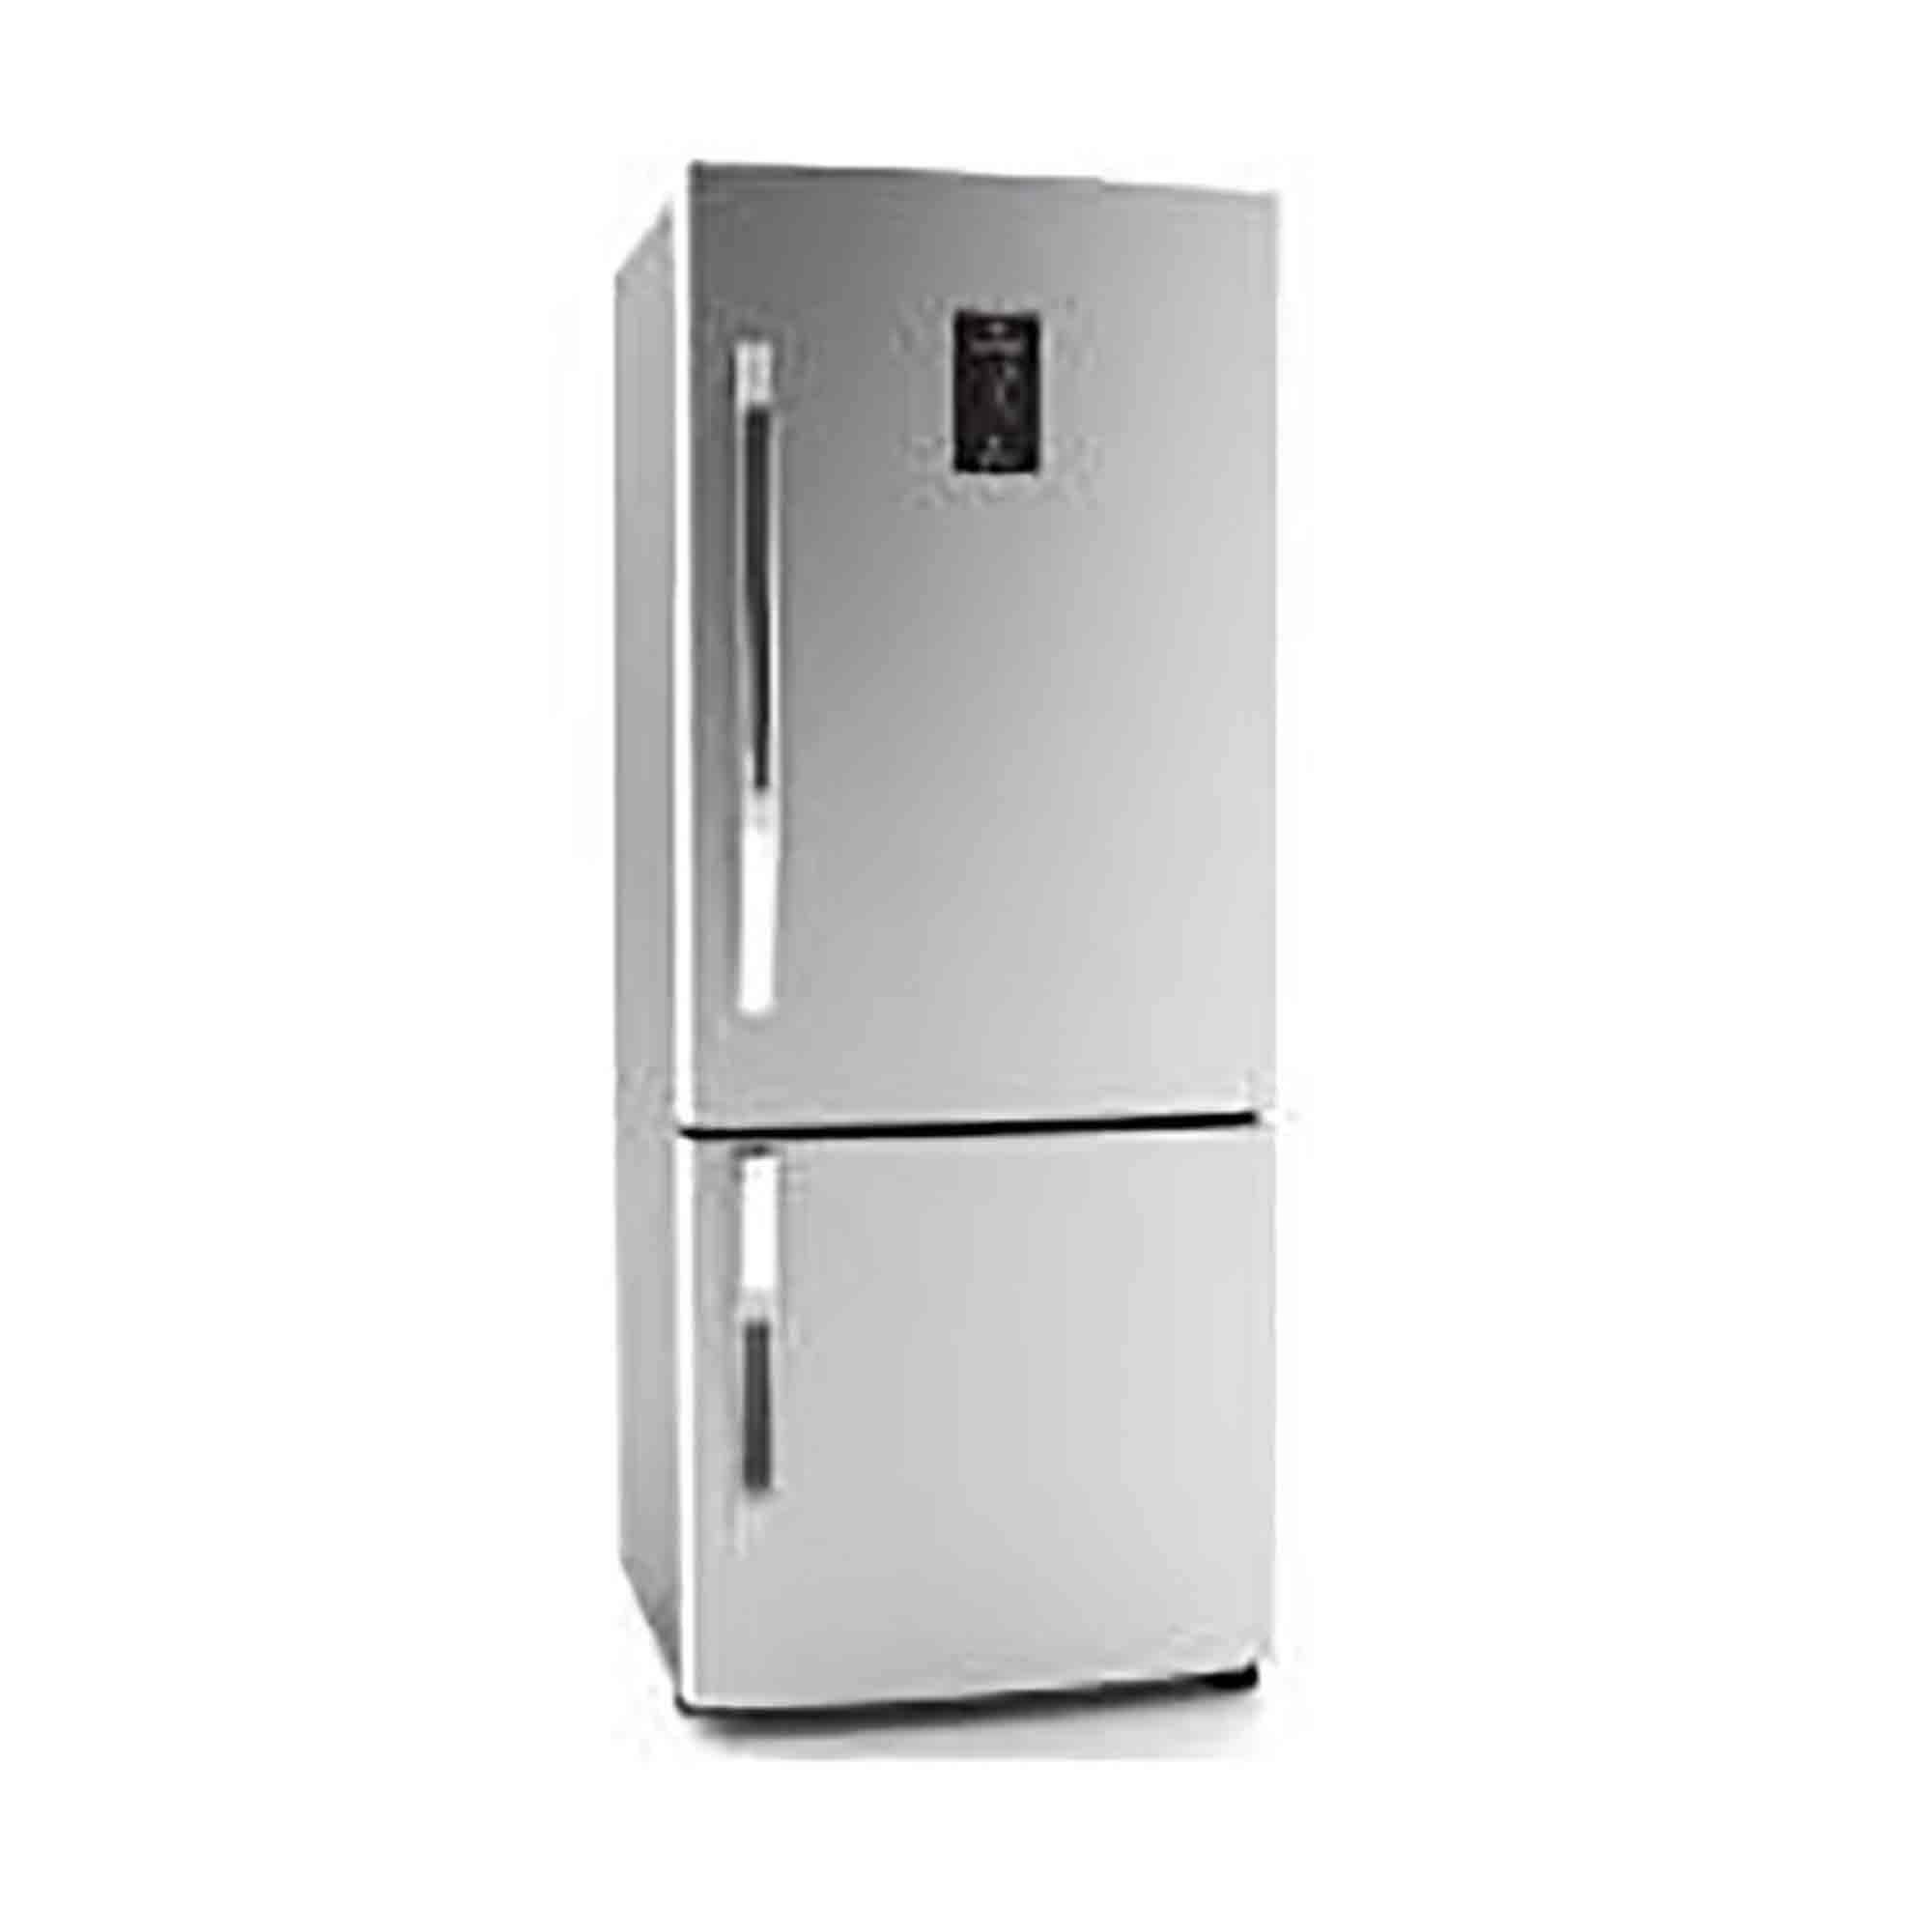 electrolux fridge. electrolux fridge ebe4500aa (450l) 2017 new model b